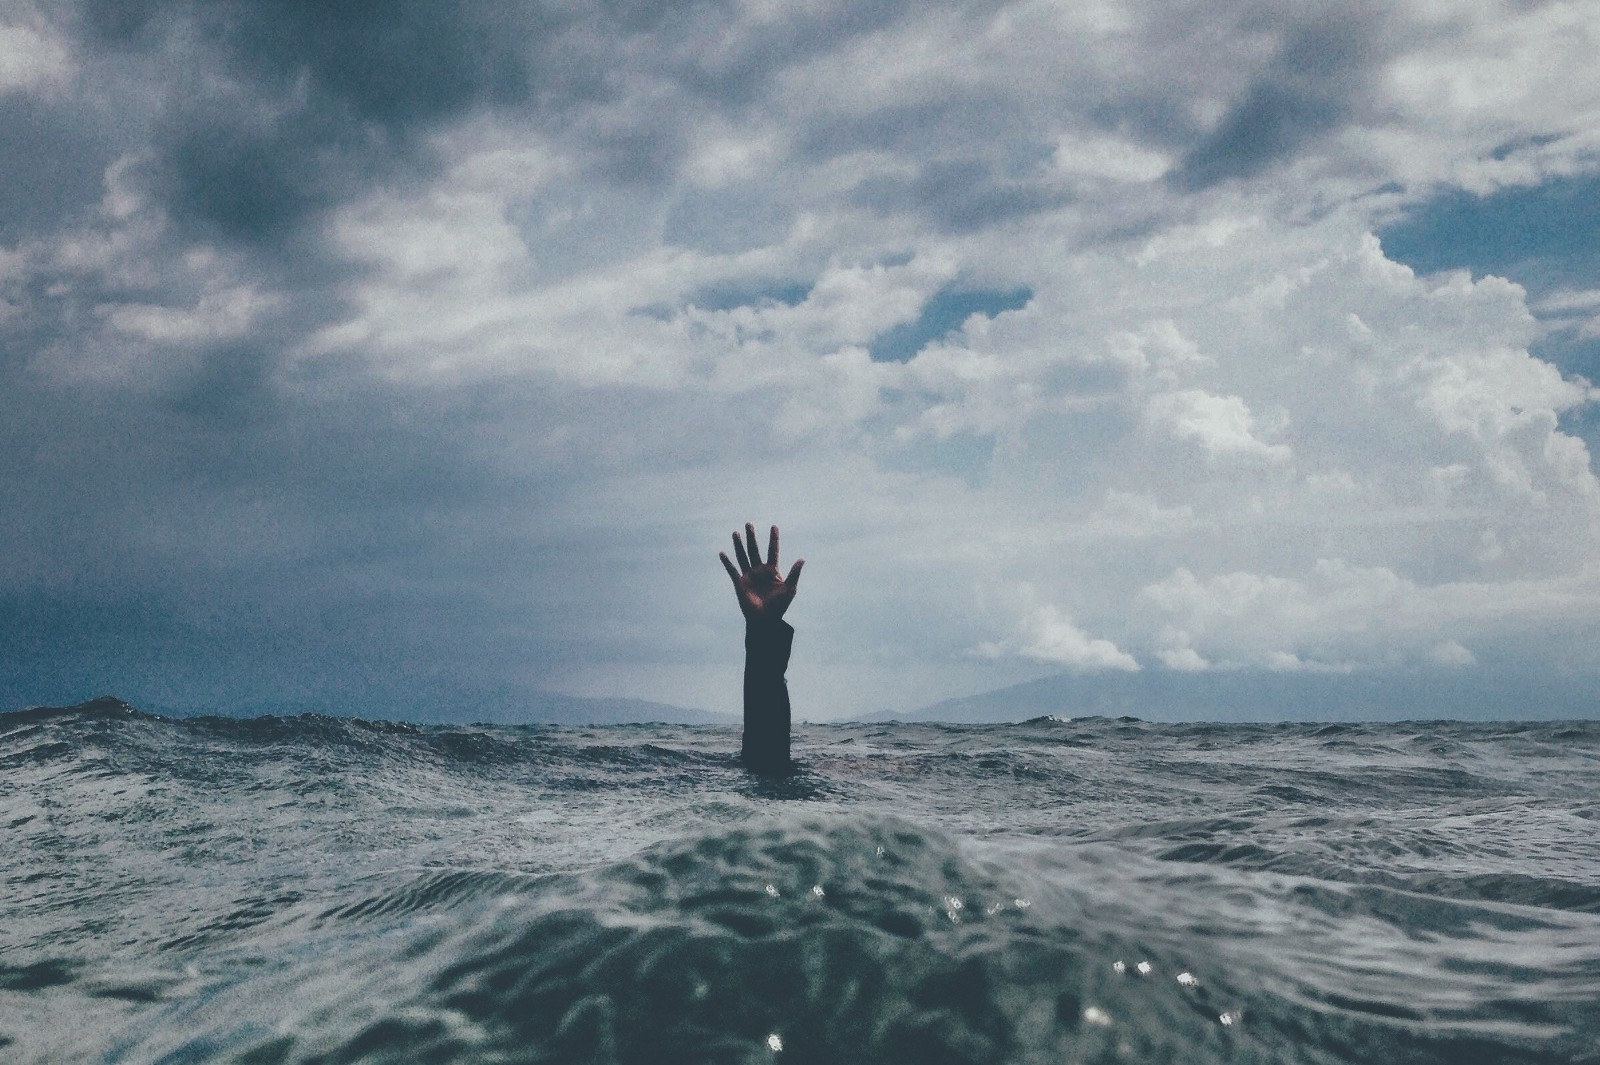 person at sea drowning with arms above water